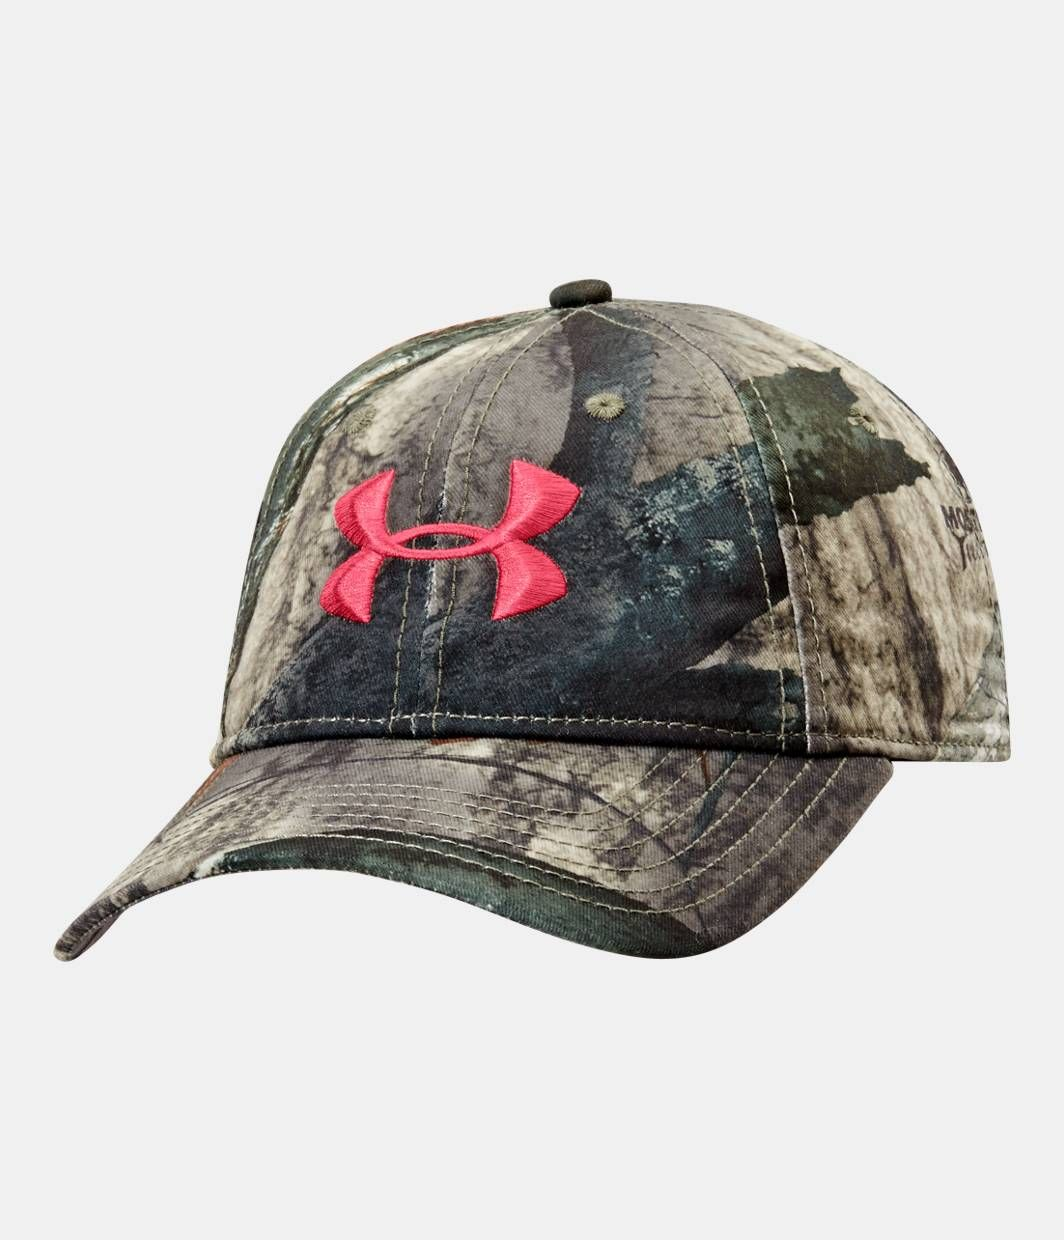 Shop Under Armour for Women s UA Camo Hat in our Womens Headwear  department. Free shipping is available in US. eb3c5d261